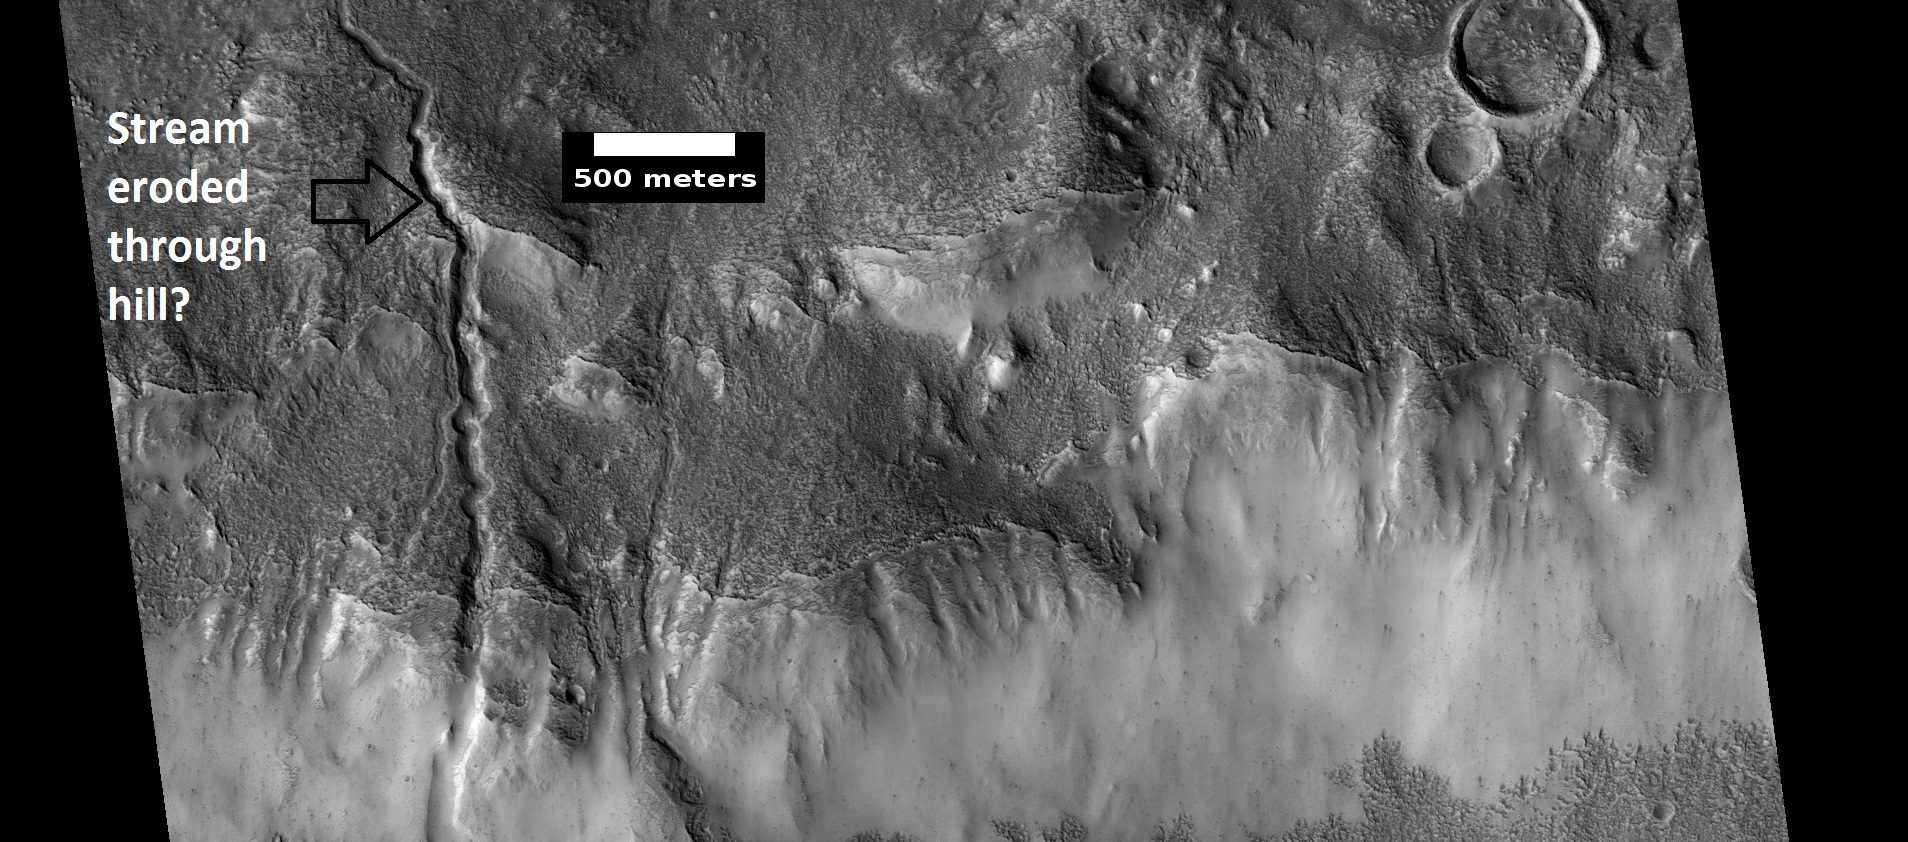 Channels, as seen by HiRISE under HiWish program. Stream appears to have eroded through a hill.